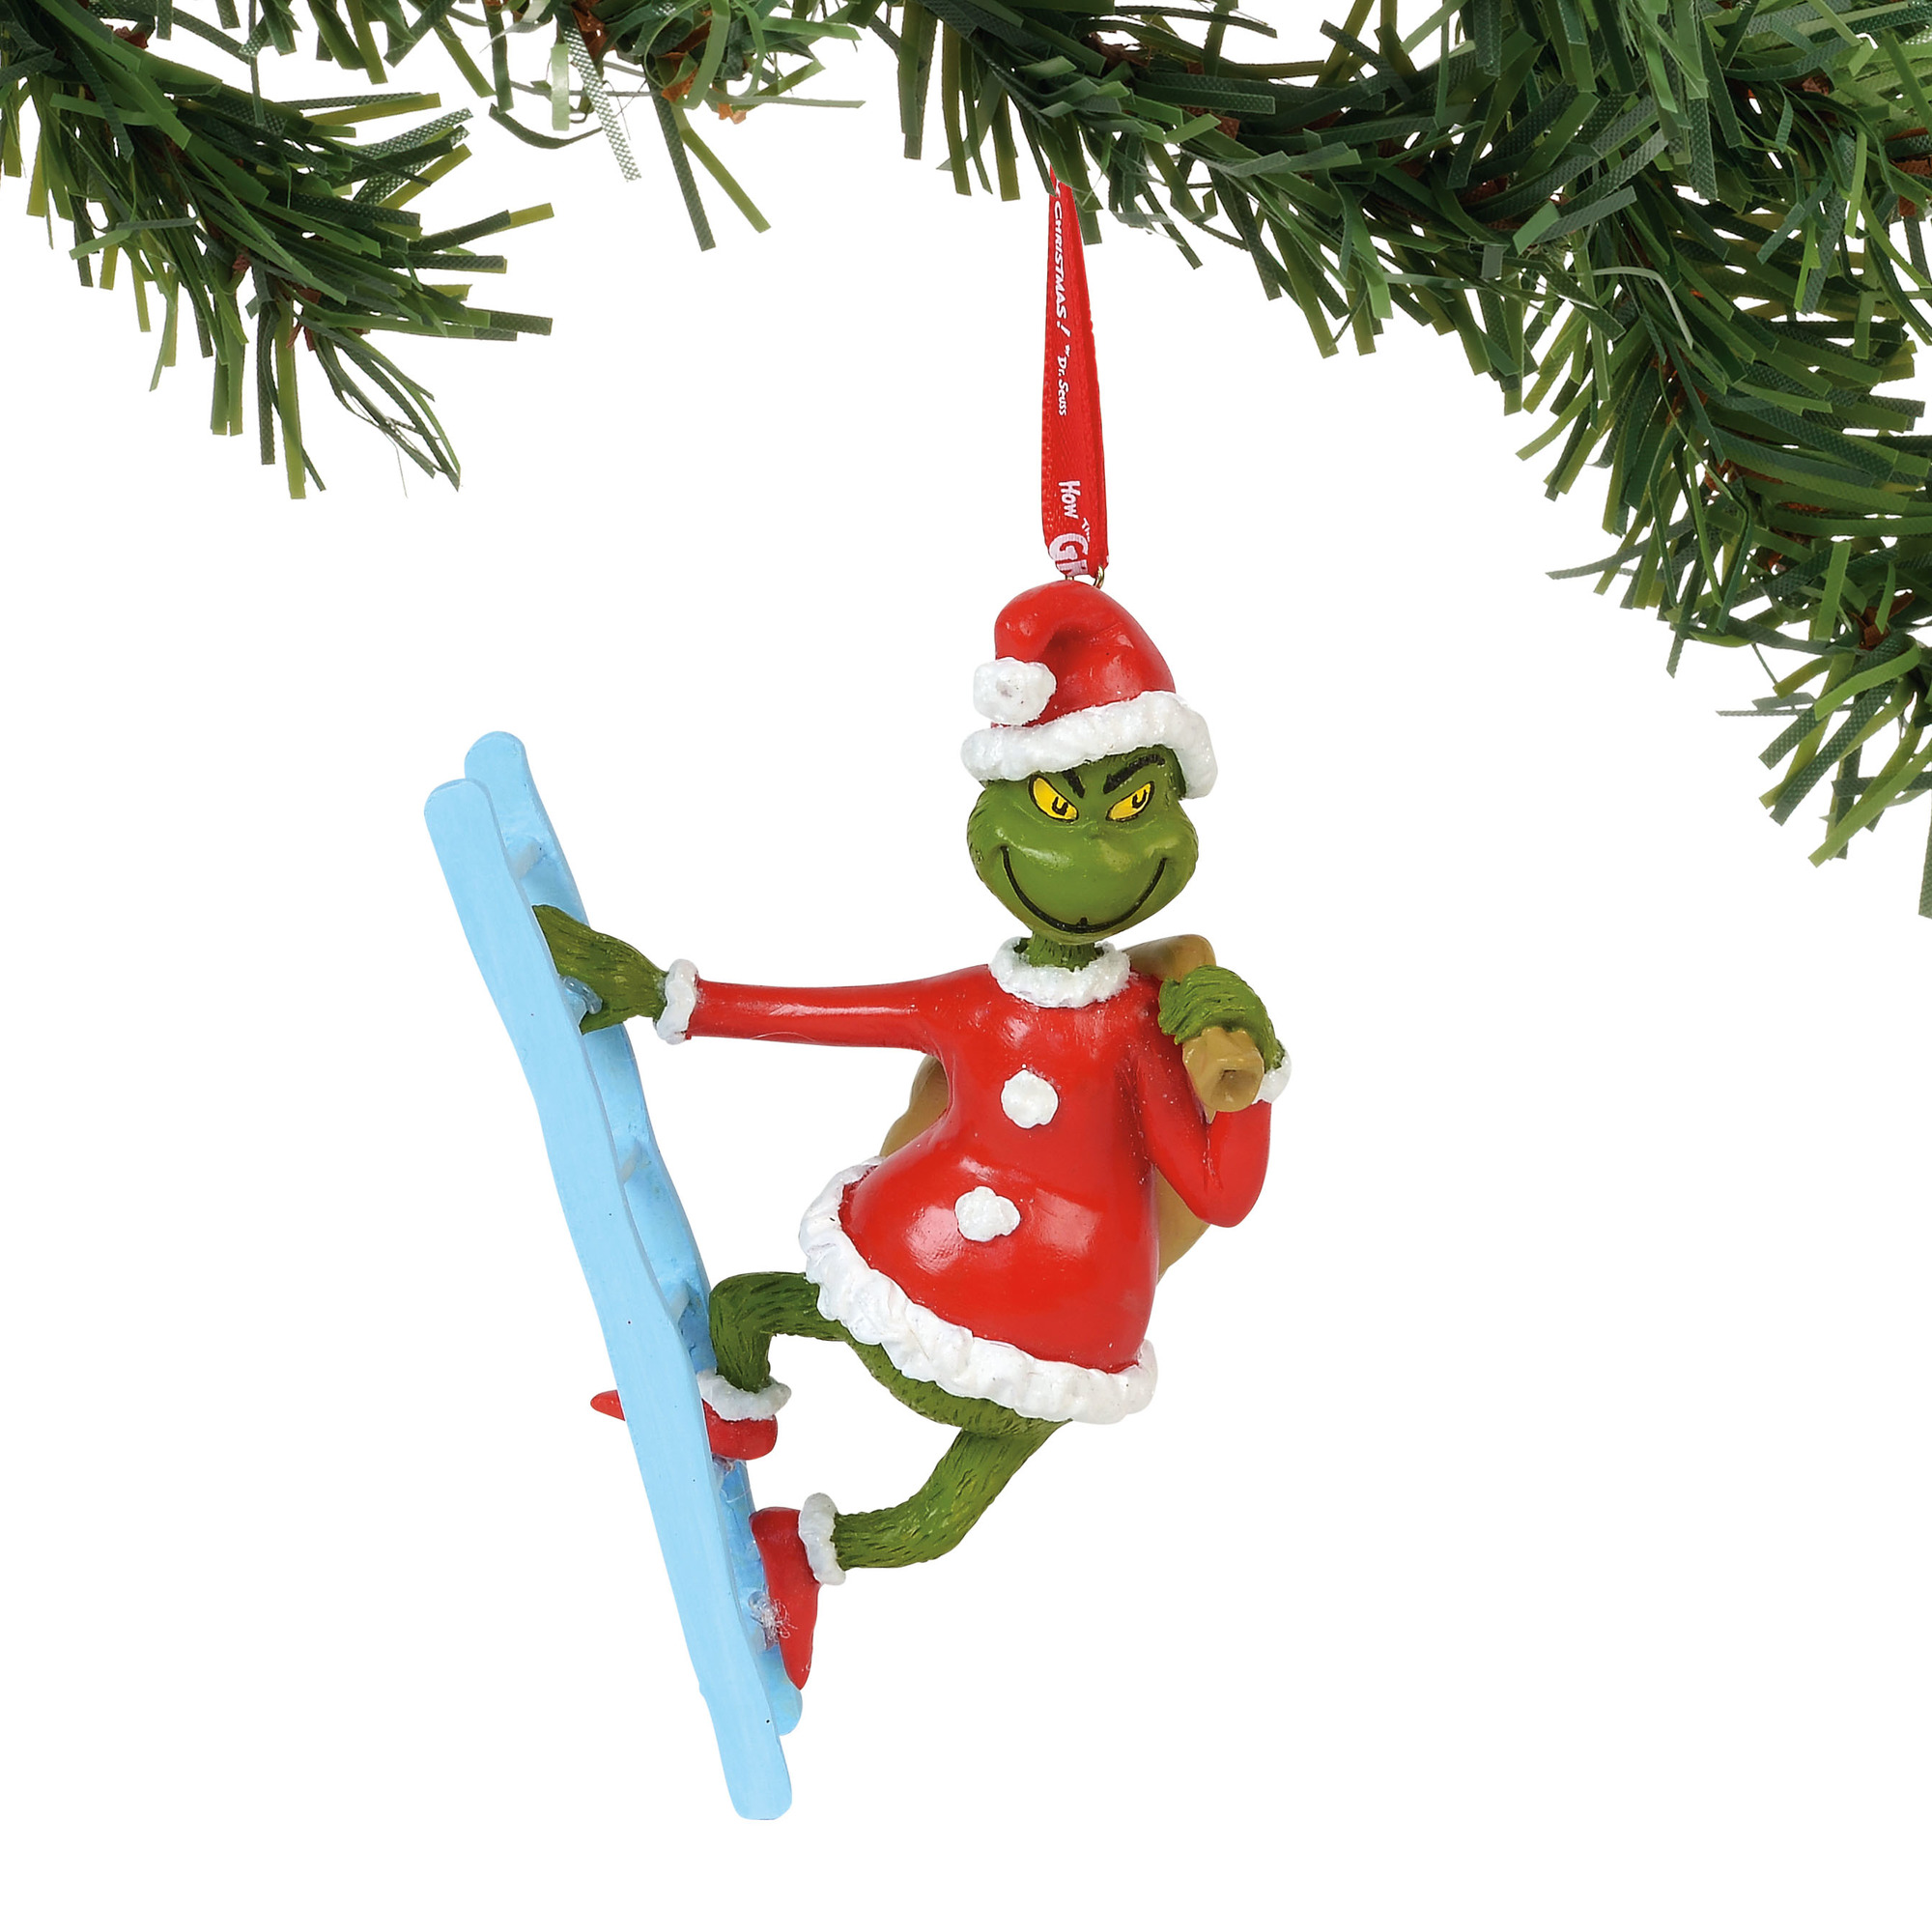 Universal Department 56 Ornament - Grinch - Grinch on a Ladder